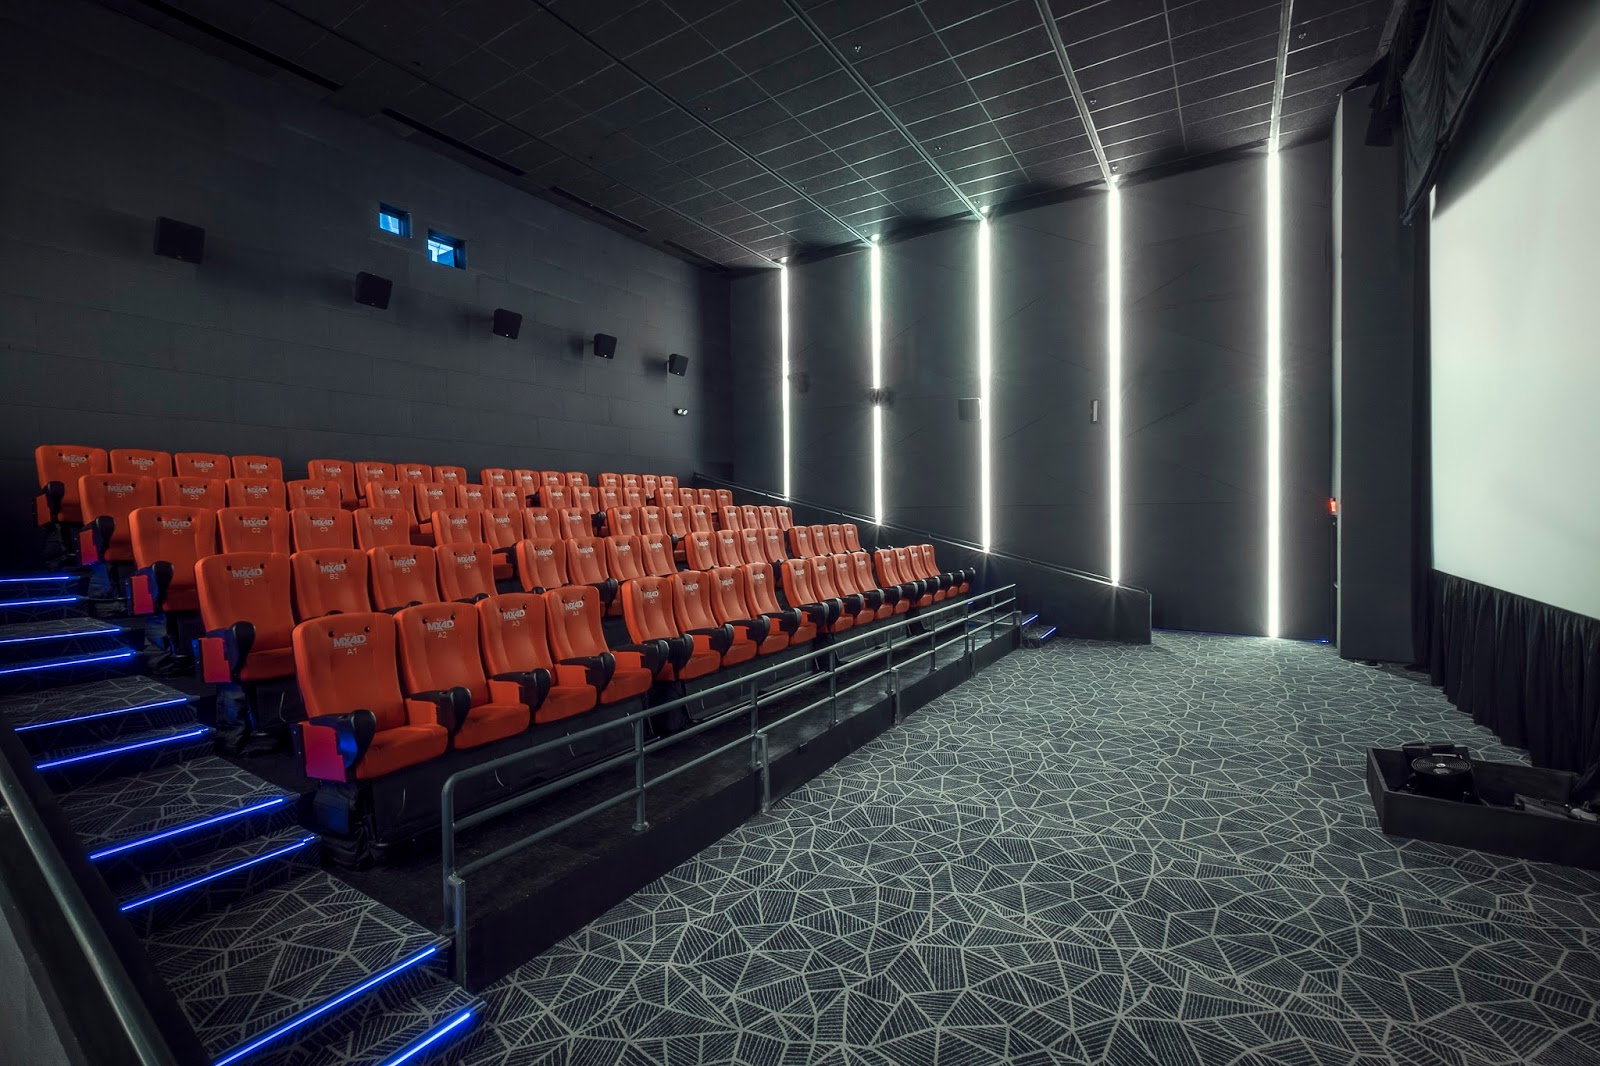 vista posture chair office chairs for heavy people mx4d motion efx theater only at cinemas aci girl